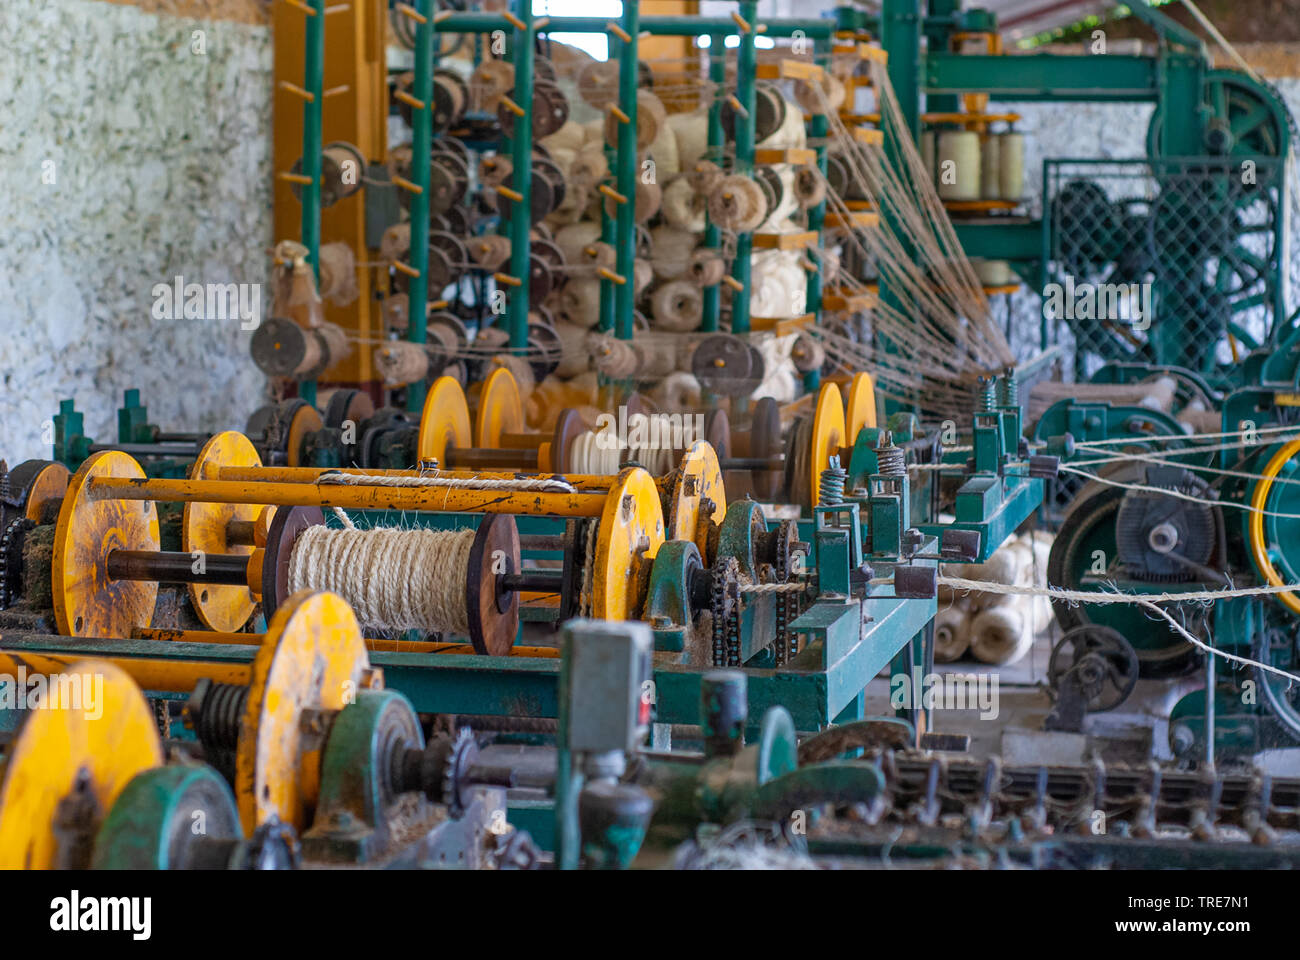 Balls of Agave plant fibers, taken at the factory in Tecoh, Yucatan - Stock Image